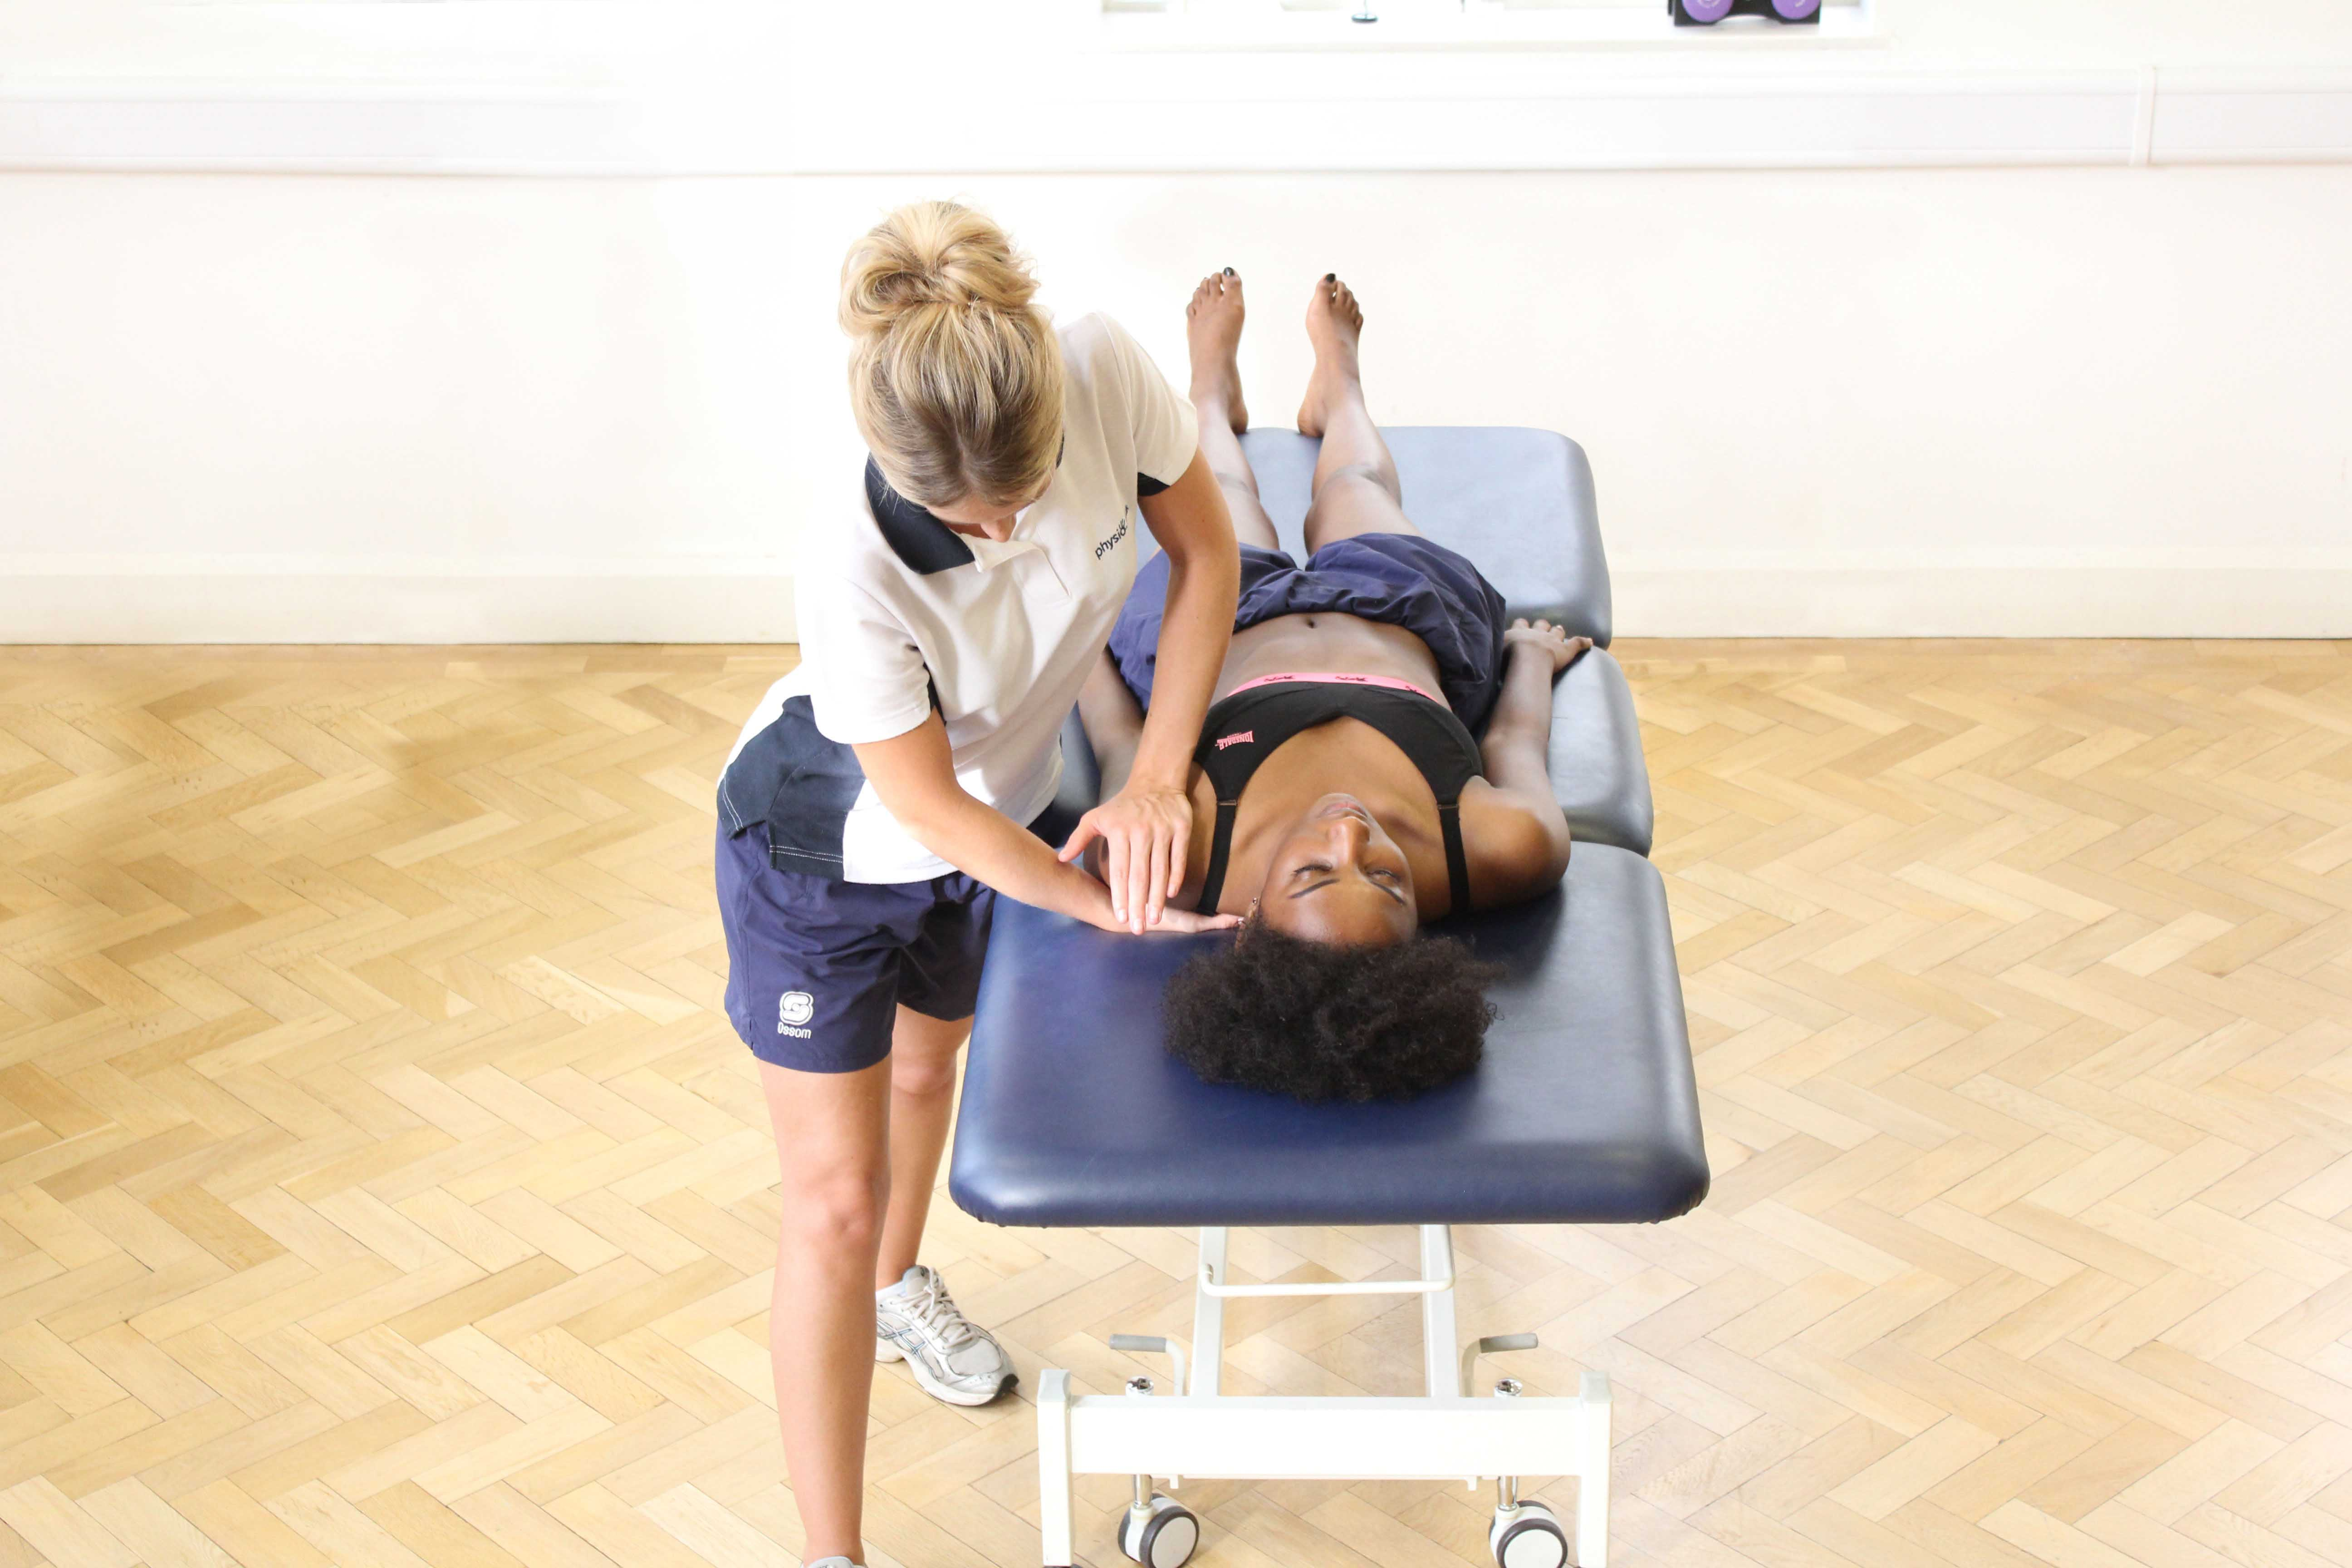 Mobilisations of the lumbar vertebrea by a specilaist physiotherapist